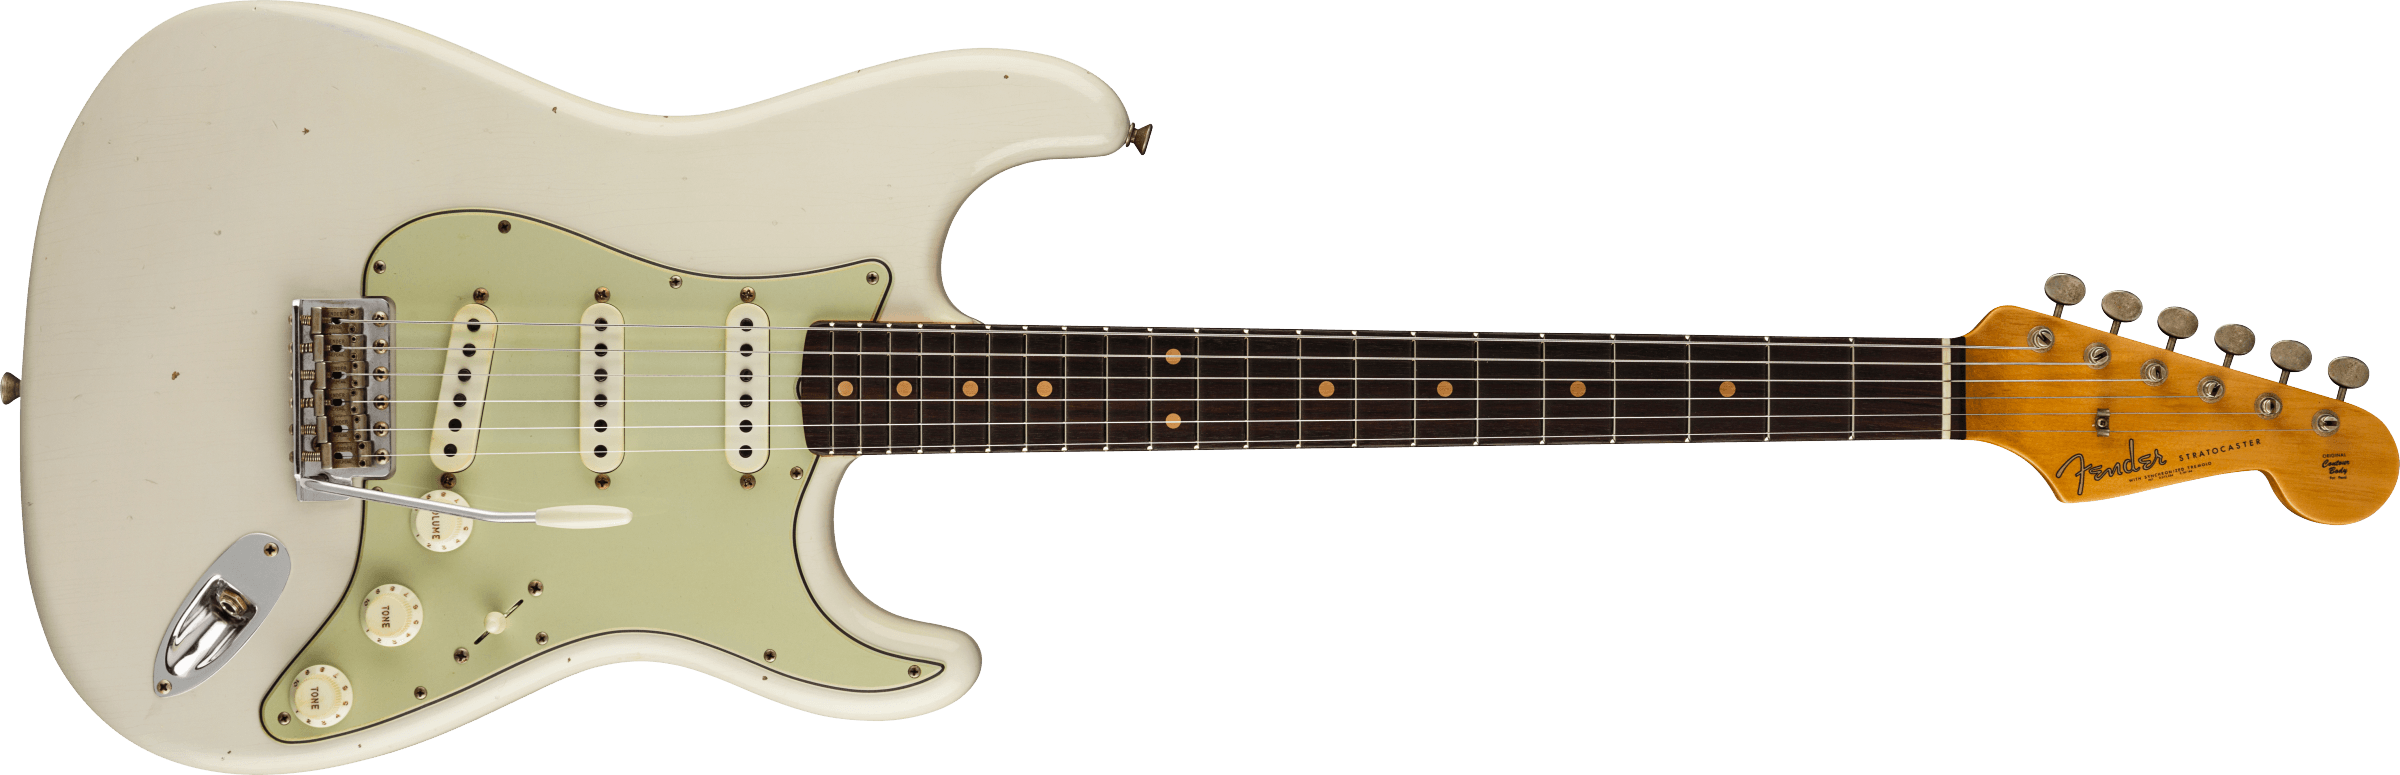 FENDER-Limited-Edition-62-63-Stratocaster-Journeyman-Relic-Rosewood-Fingerboard-Aged-Olympic-White-sku-571005156